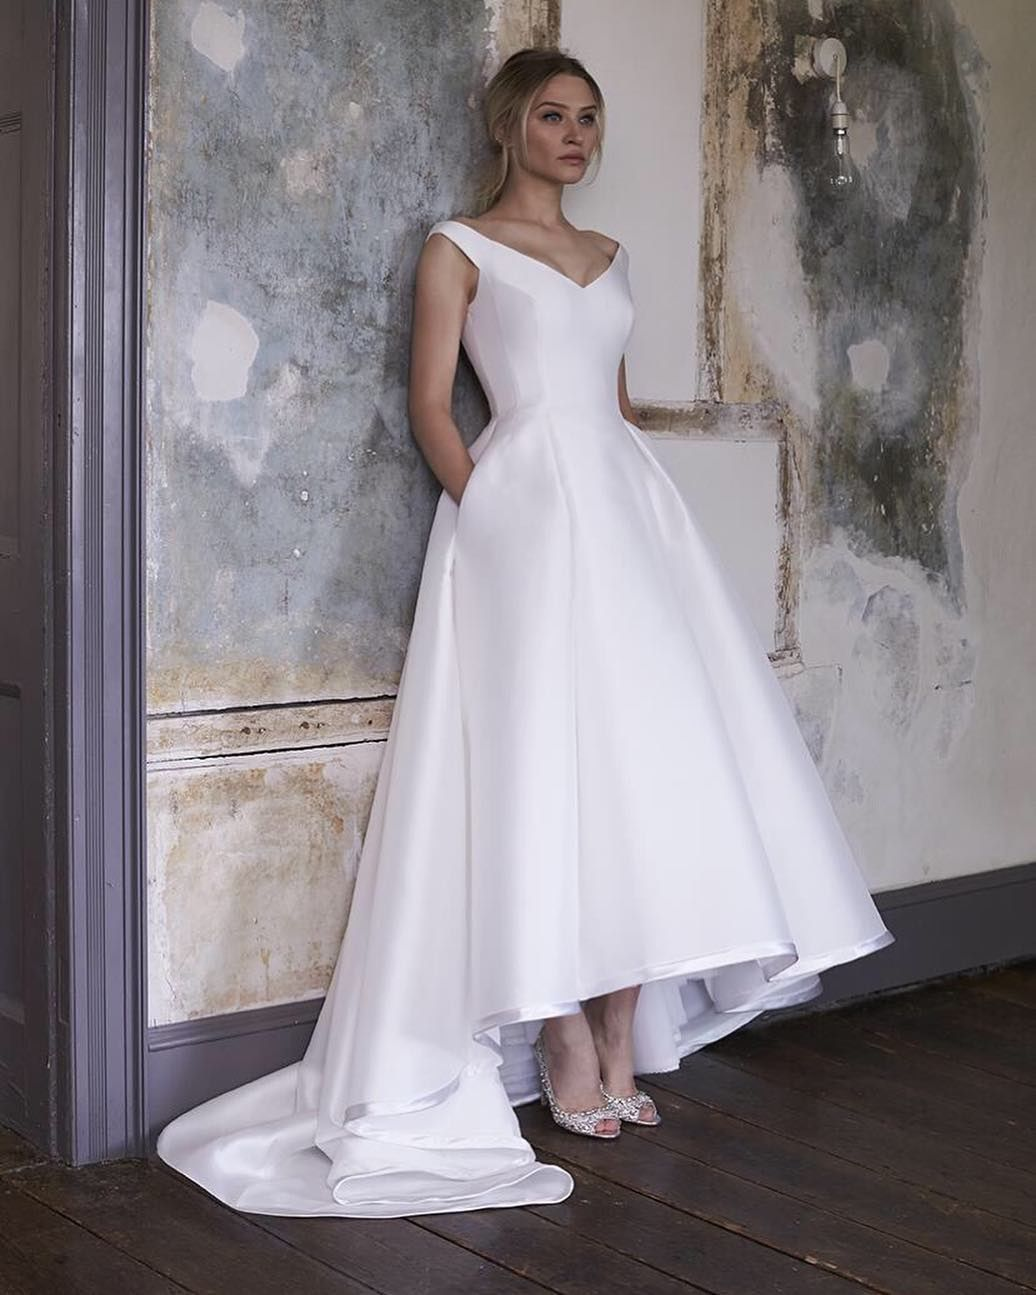 Simple Classic Traditional Elegant Wedding Dress By Sassi Holford